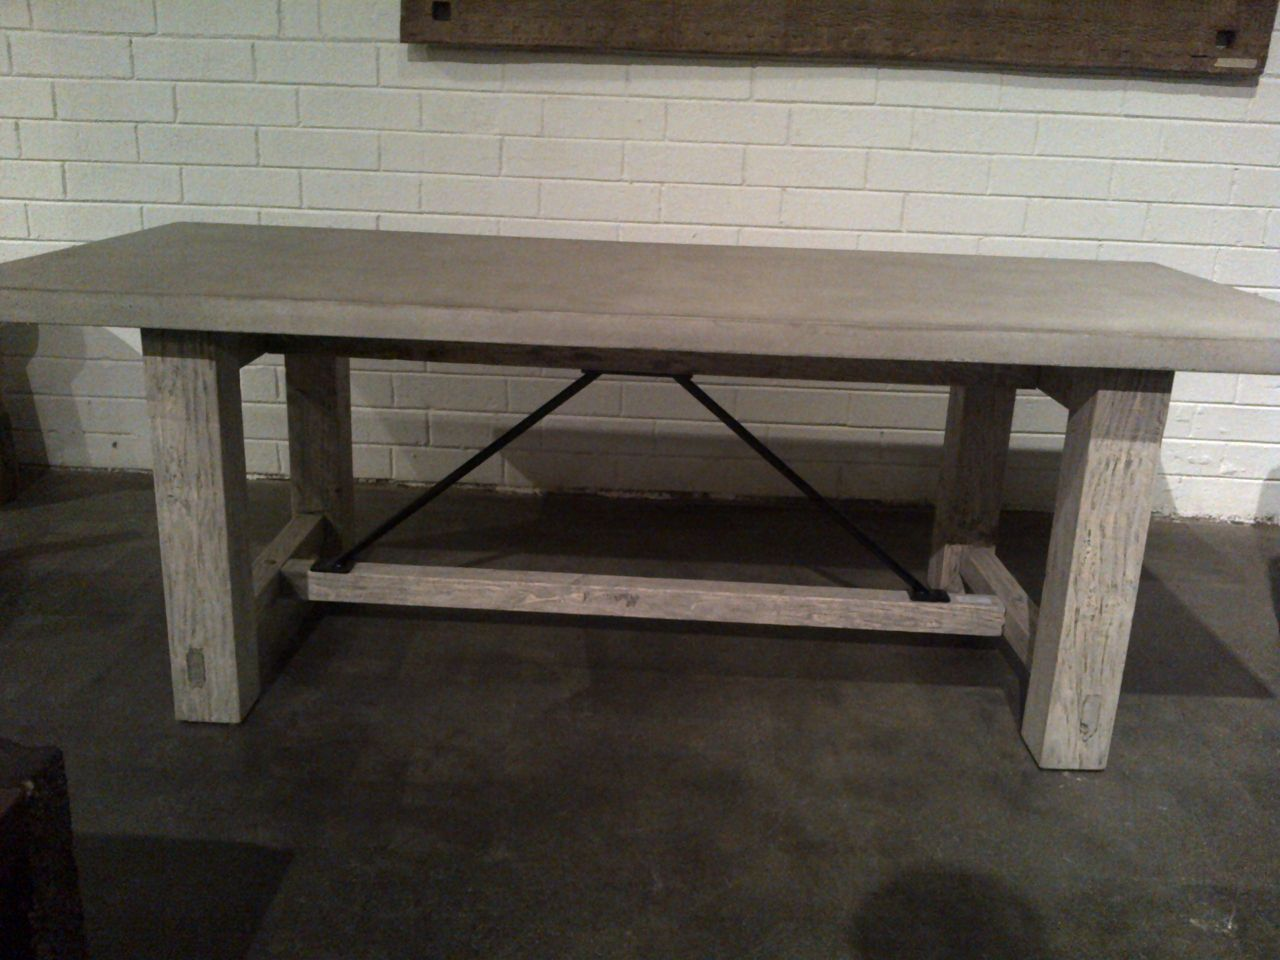 Genial Concrete And Reclaimed Wood Rustic Farm Table